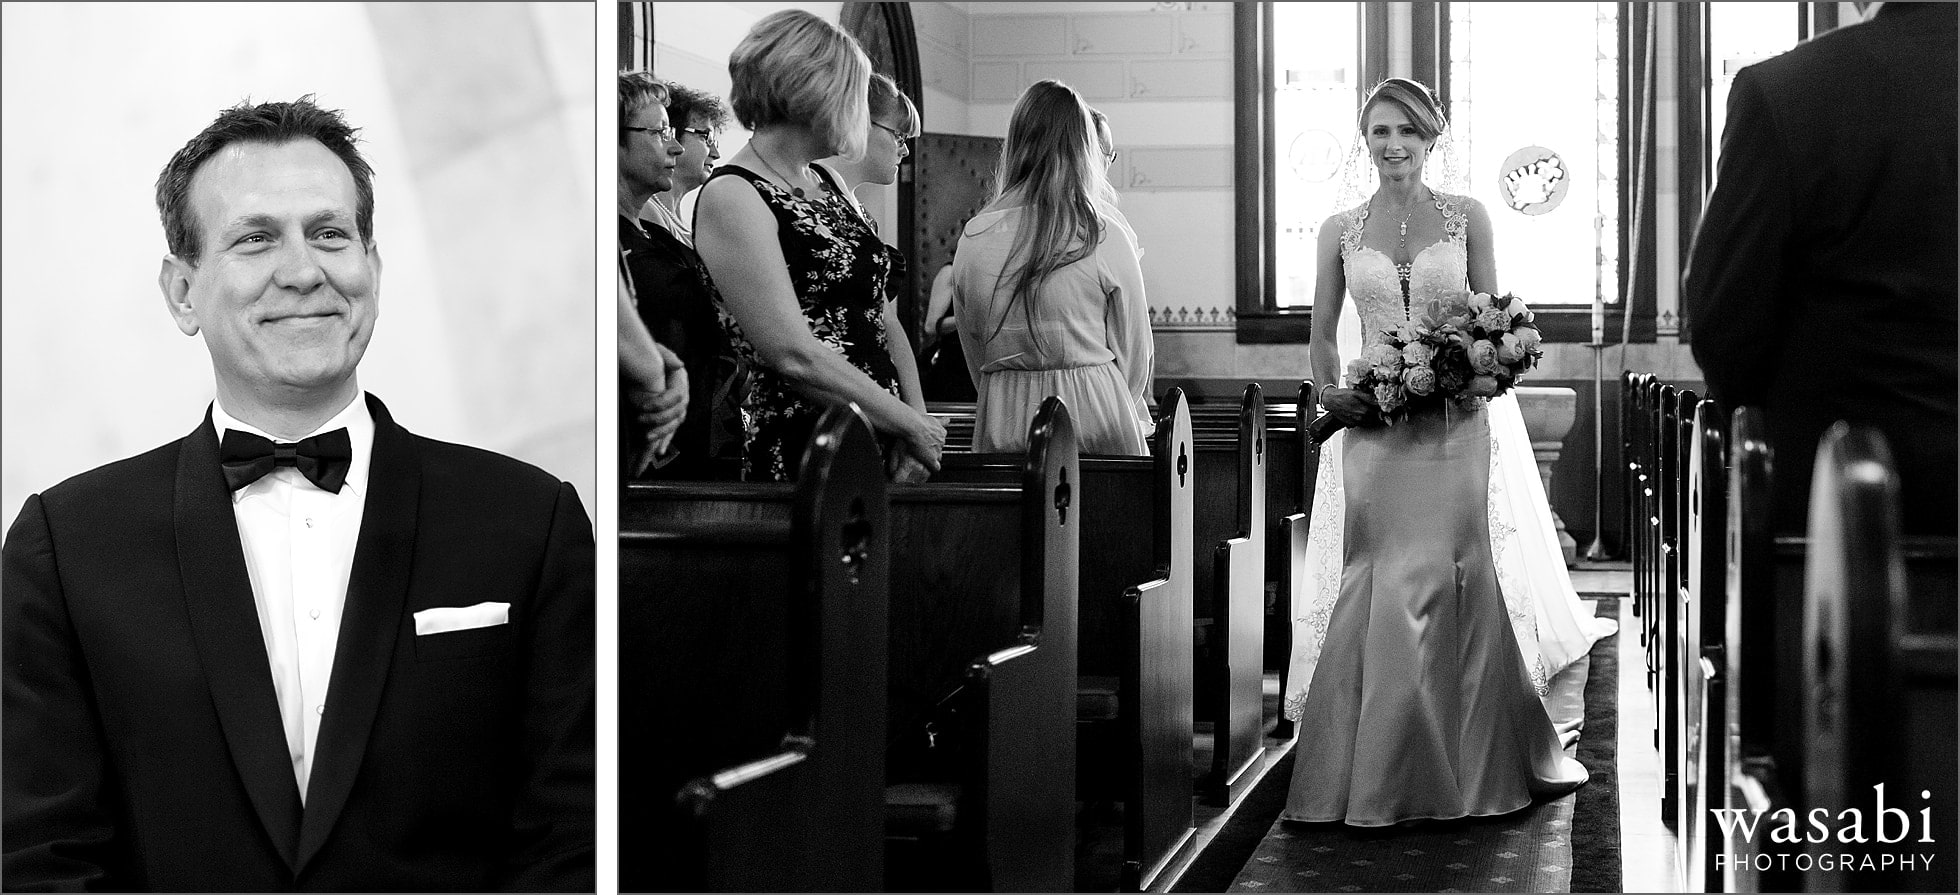 groom smiles while watching bride walk down the aisle during their wedding ceremony at Calvary Church in downtown Golden Colorado